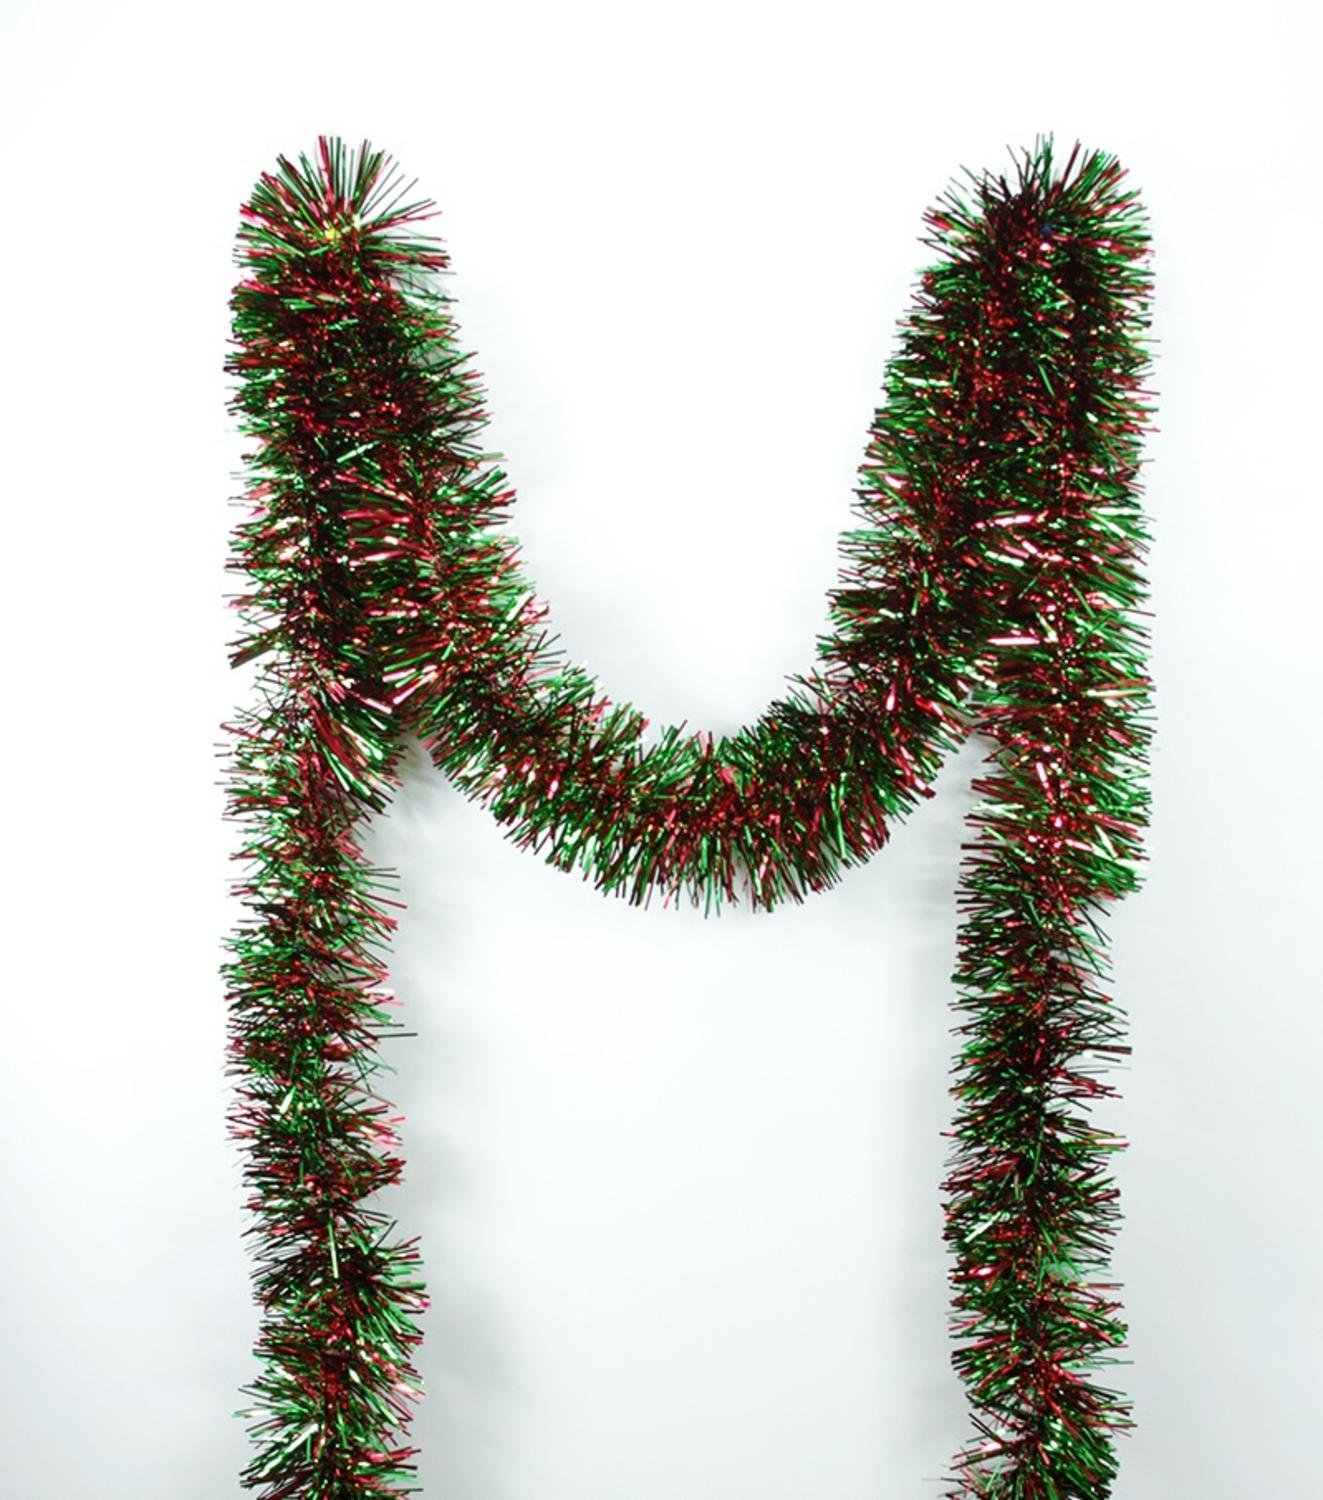 Northlight Festive Shiny Christmas Tinsel Garland Unlit-6 Ply, 50', Red/Green